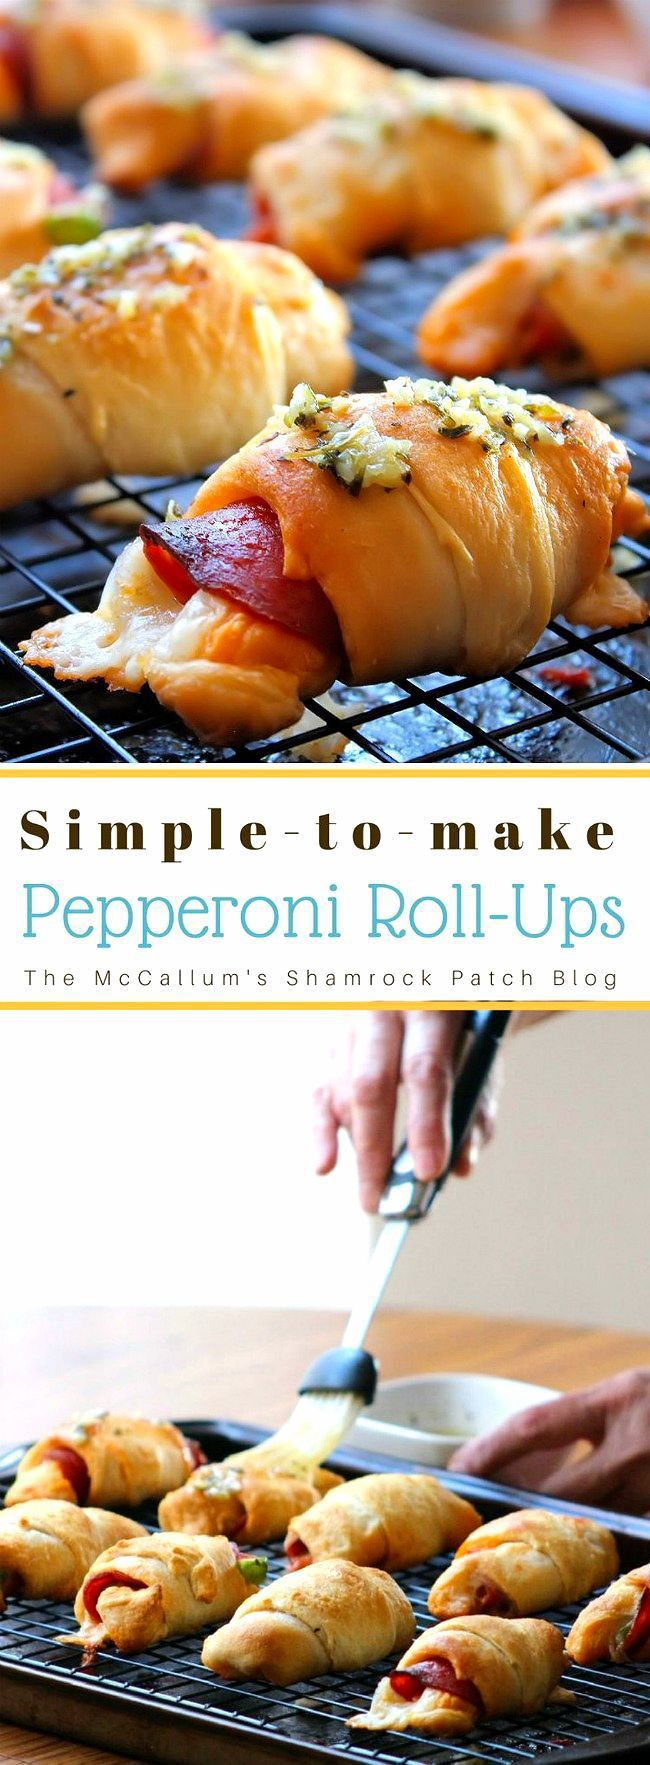 Pepperoni Roll-ups are super simple to make and even better to serve up to your family and friends. You can make them as easy as 1-2-3 for the kids after school as a snack that the entire family will be sure to love time after time. Made with crescent rolls, deli pepperoni, slicedprovolone cheese, your favoritepasta sauce and then baked to perfection in a 400 Degree oven.